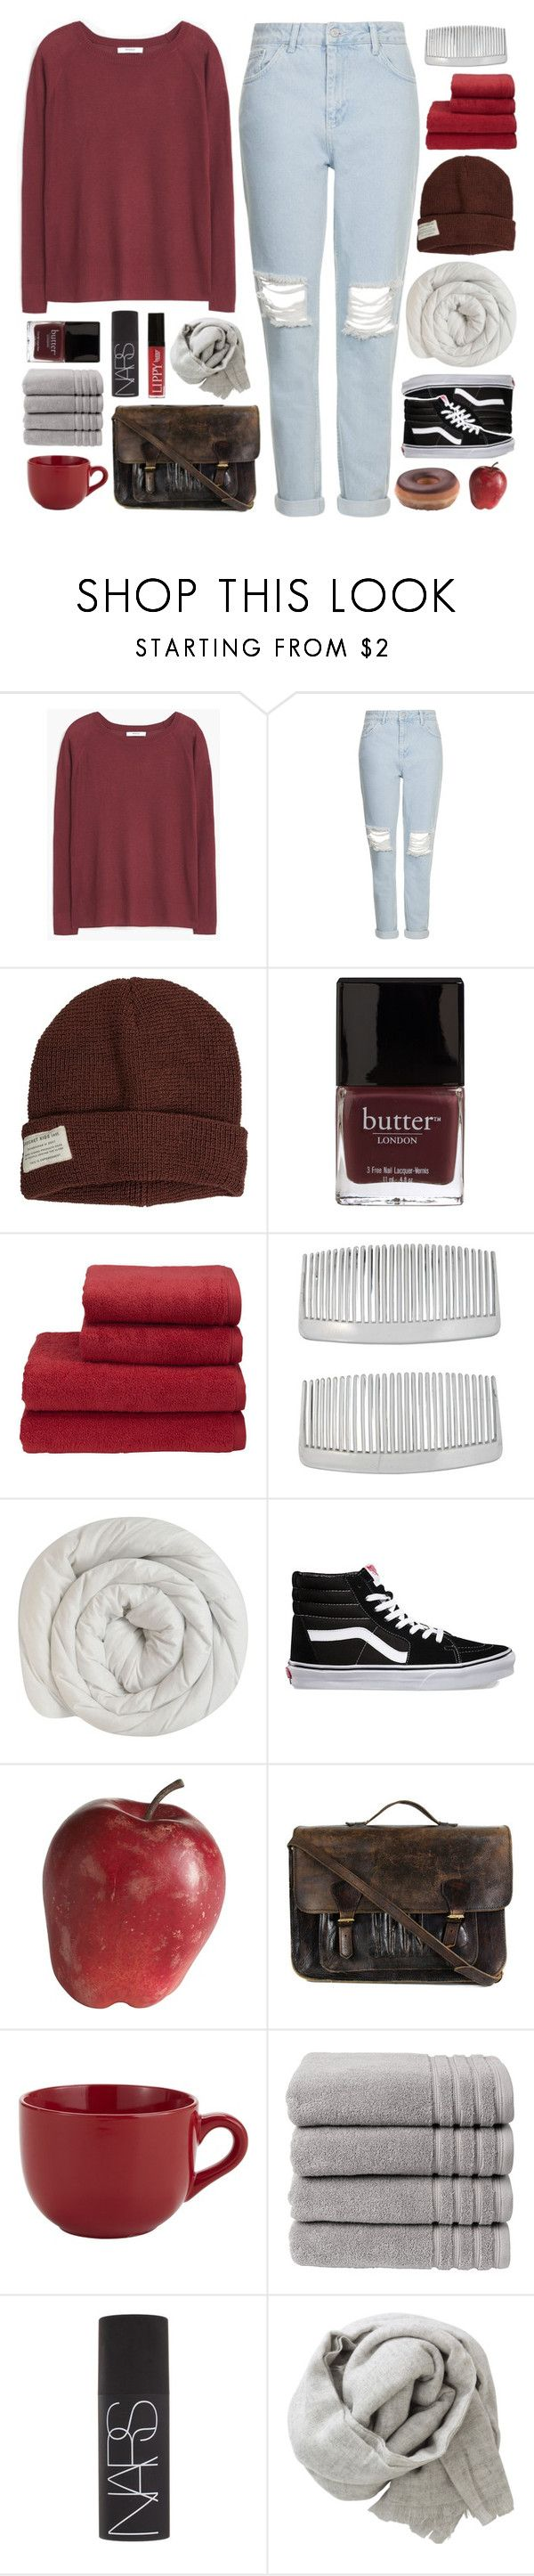 """""""drifter"""" by adal1ne ❤ liked on Polyvore featuring MANGO, Topshop, Krochet Kids, Butter London, Christy, John Lewis, Vans, Pier 1 Imports, Priestley's Vintage and NARS Cosmetics"""